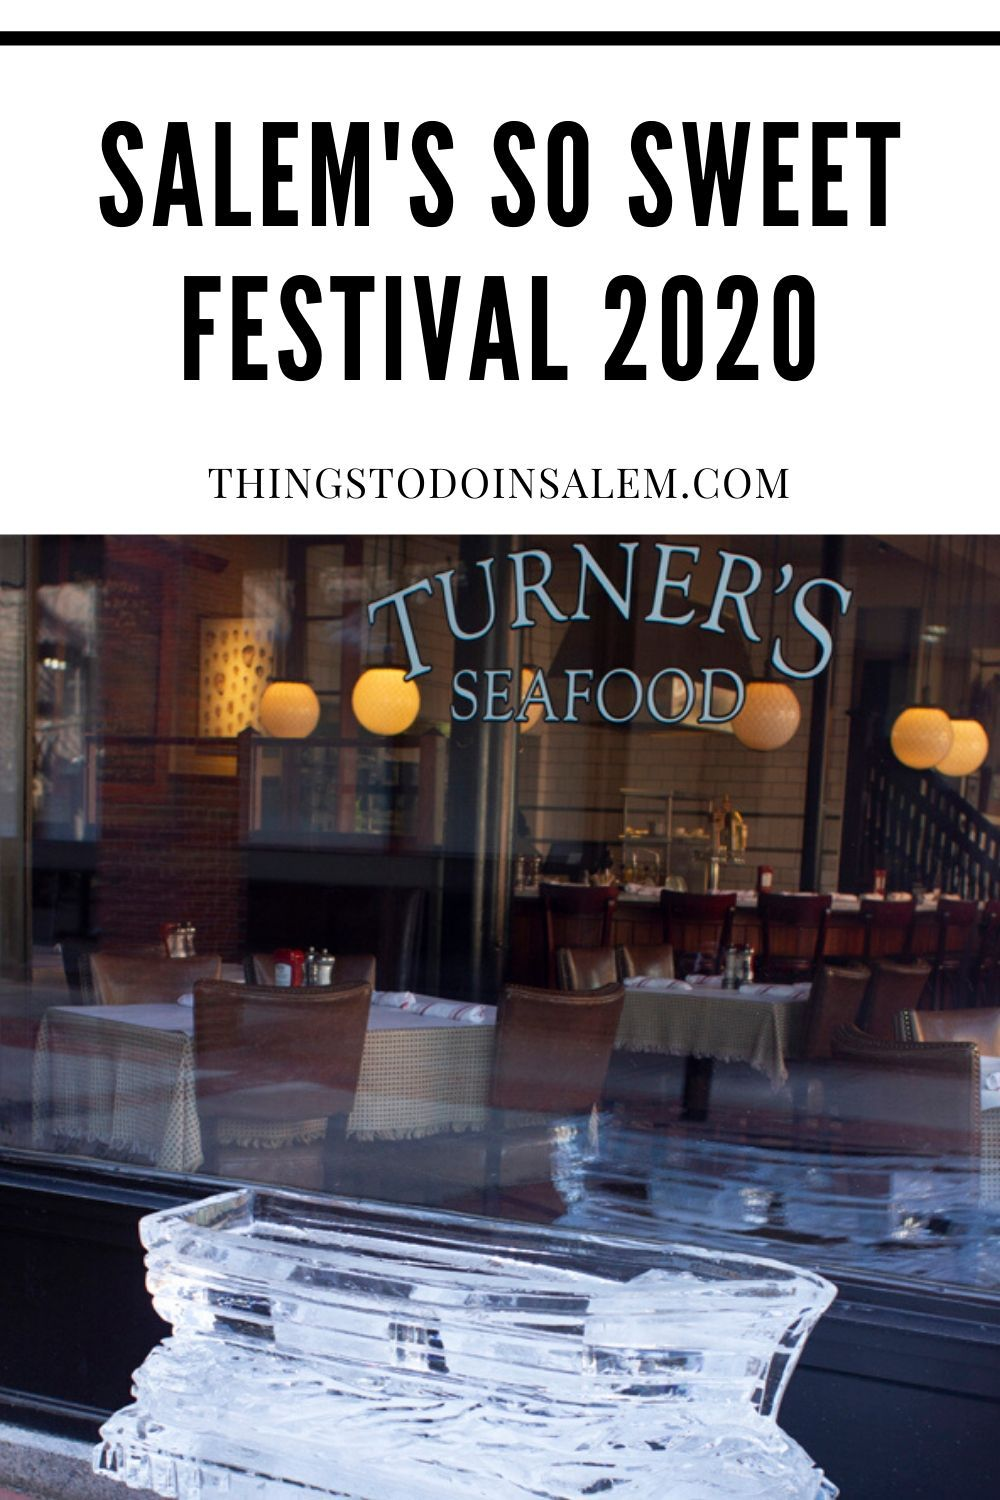 Salem's So Sweet 2020 Stuff to do, Things to do, Haunted